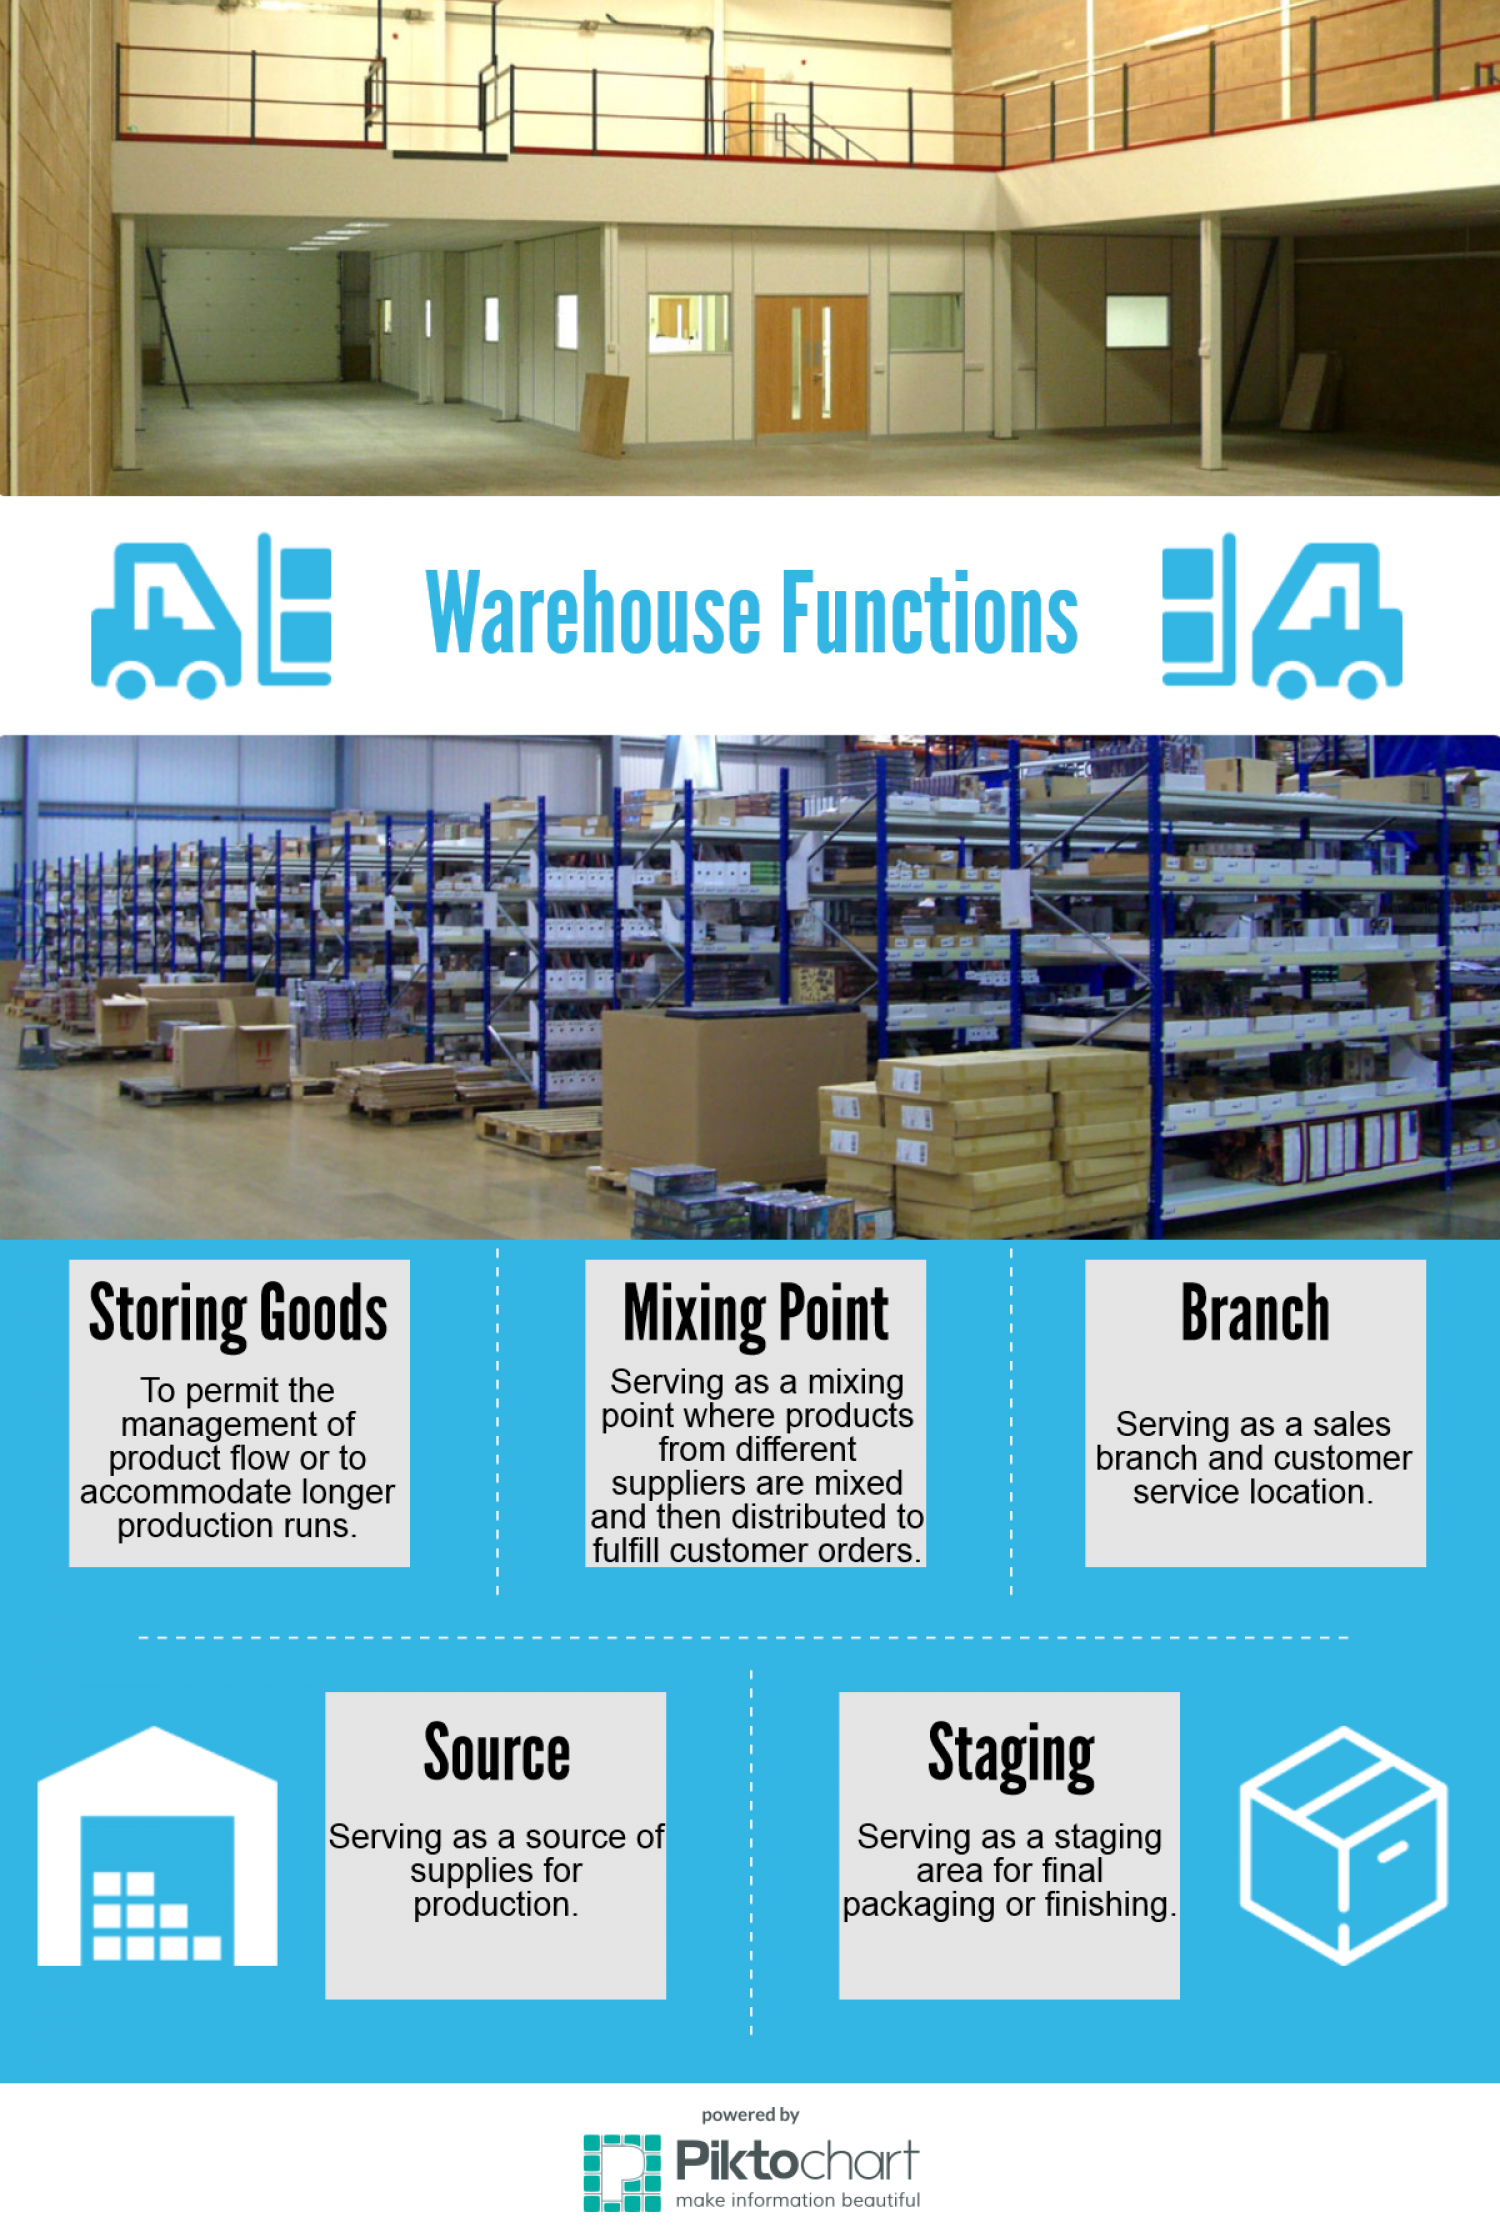 Warehouse Functions Infographic